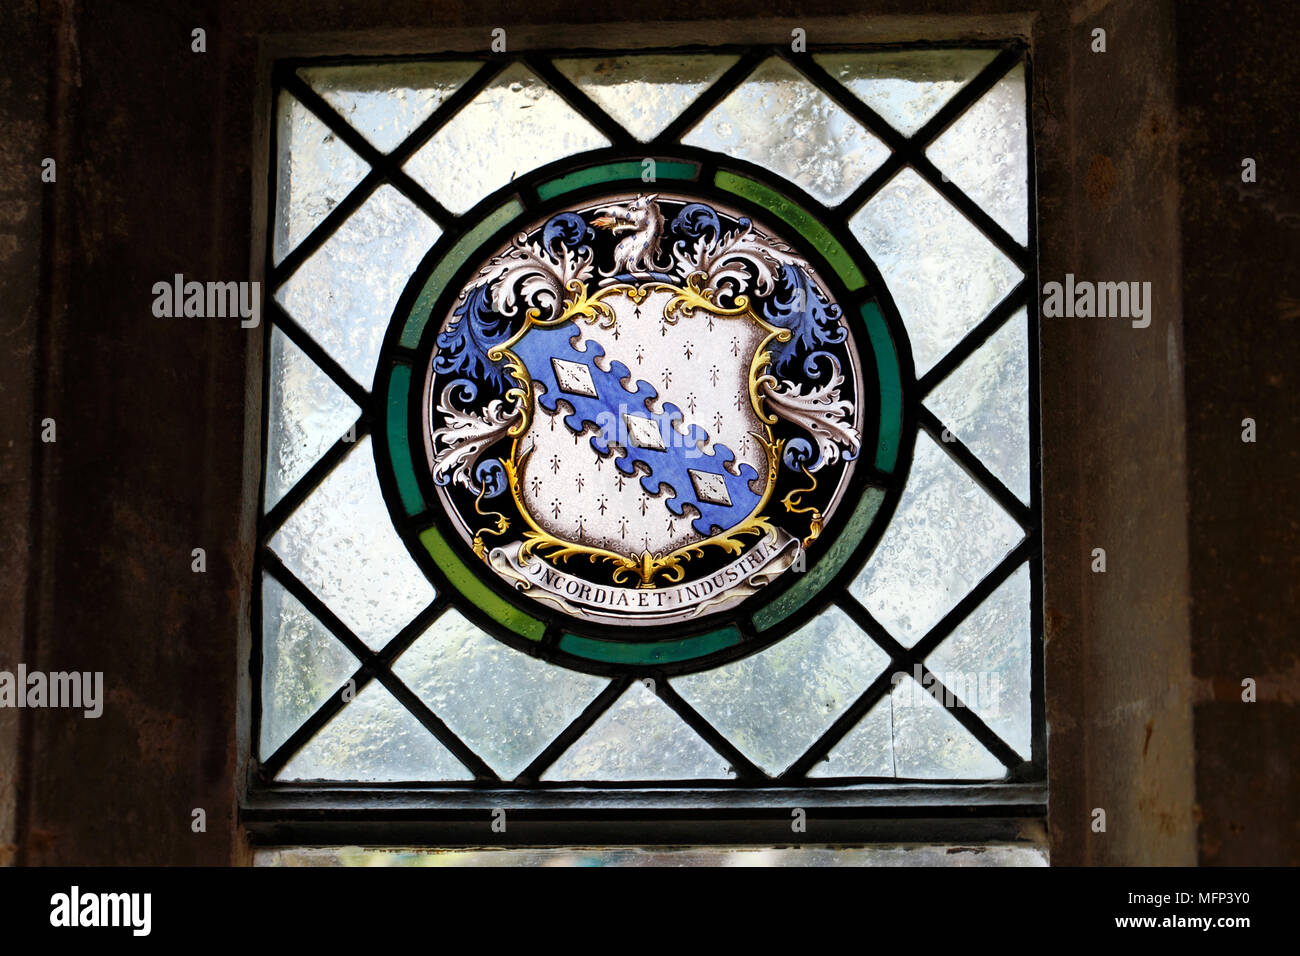 Concordia et industria, Dent family coat of arms, showing three lozenges on a field of blue. Stock Photo